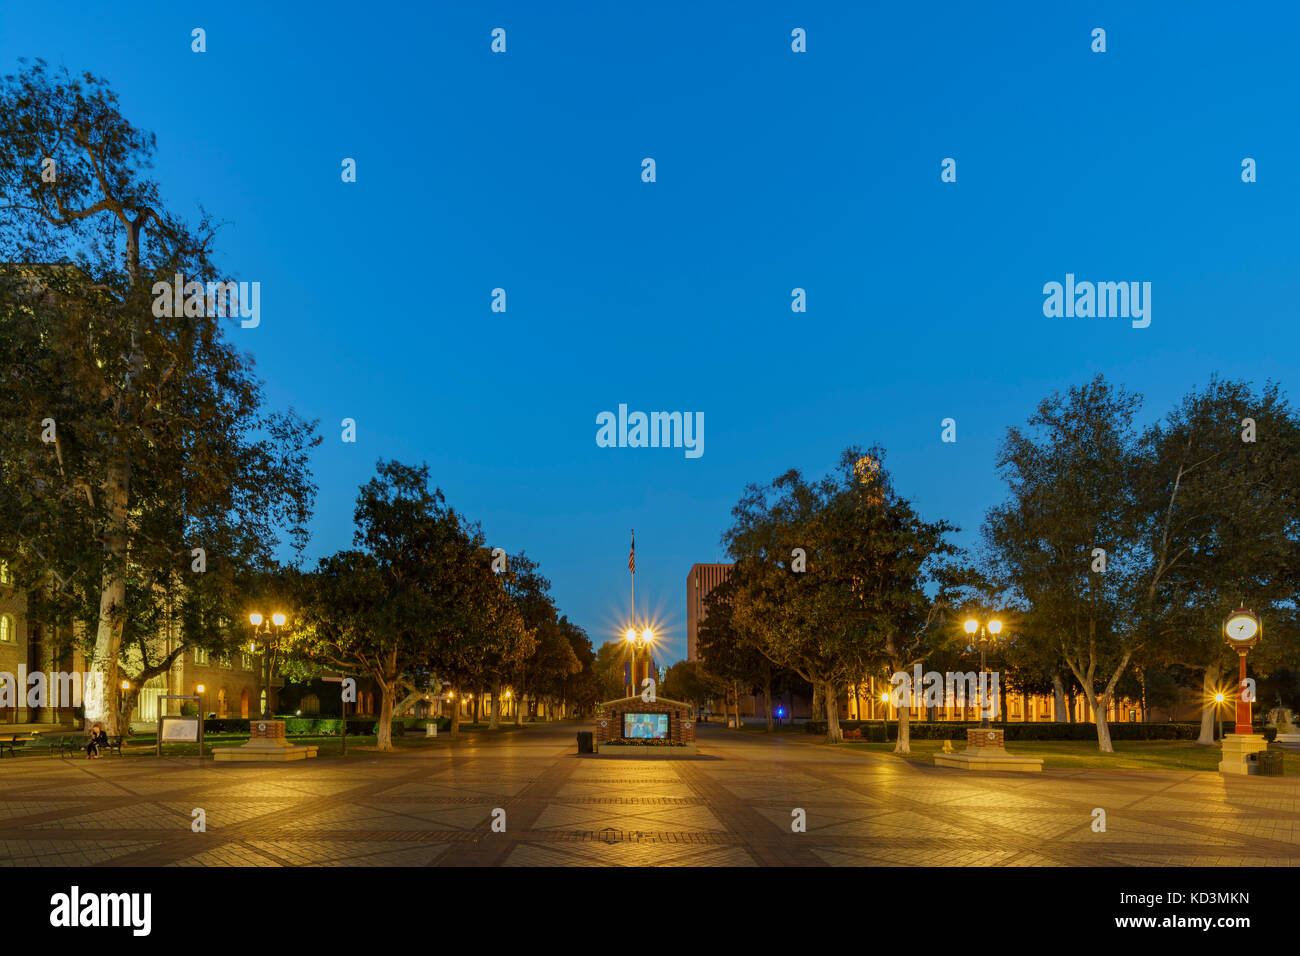 Los Angeles, OCT 8: Night view of the beautiful Alumni Park on OCT 8, 2017 at University of Southern California, - Stock Image